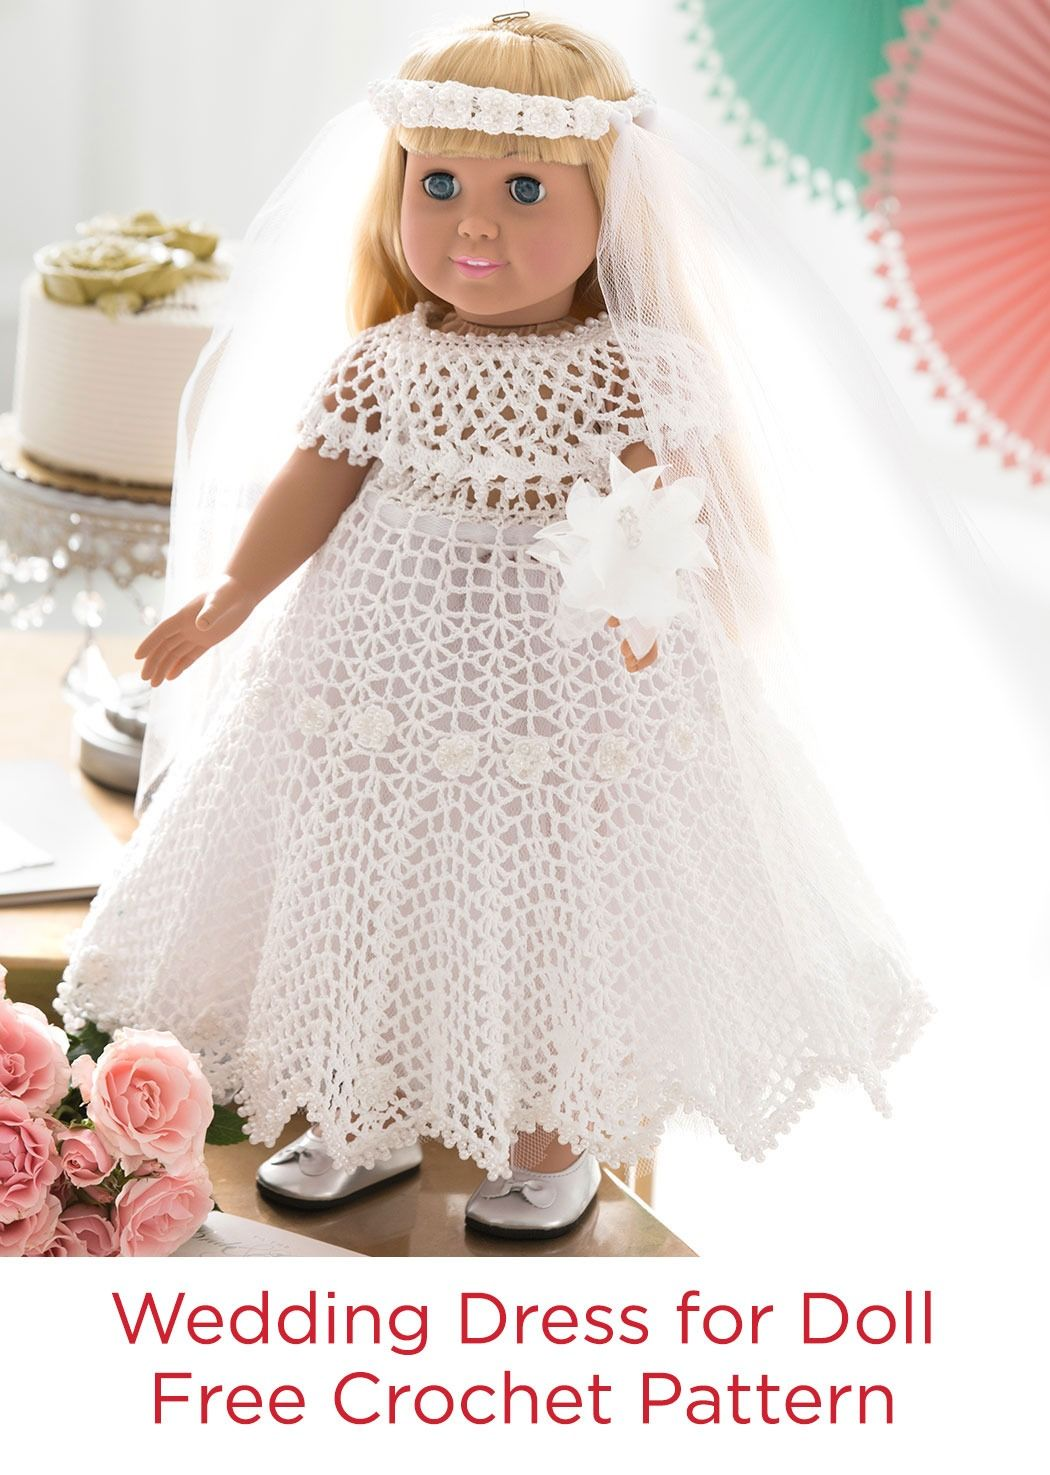 Wedding dress for doll free thread crochet pattern in red heart wedding dress for doll free thread crochet pattern in red heart classic crochet thread size 10 bankloansurffo Images